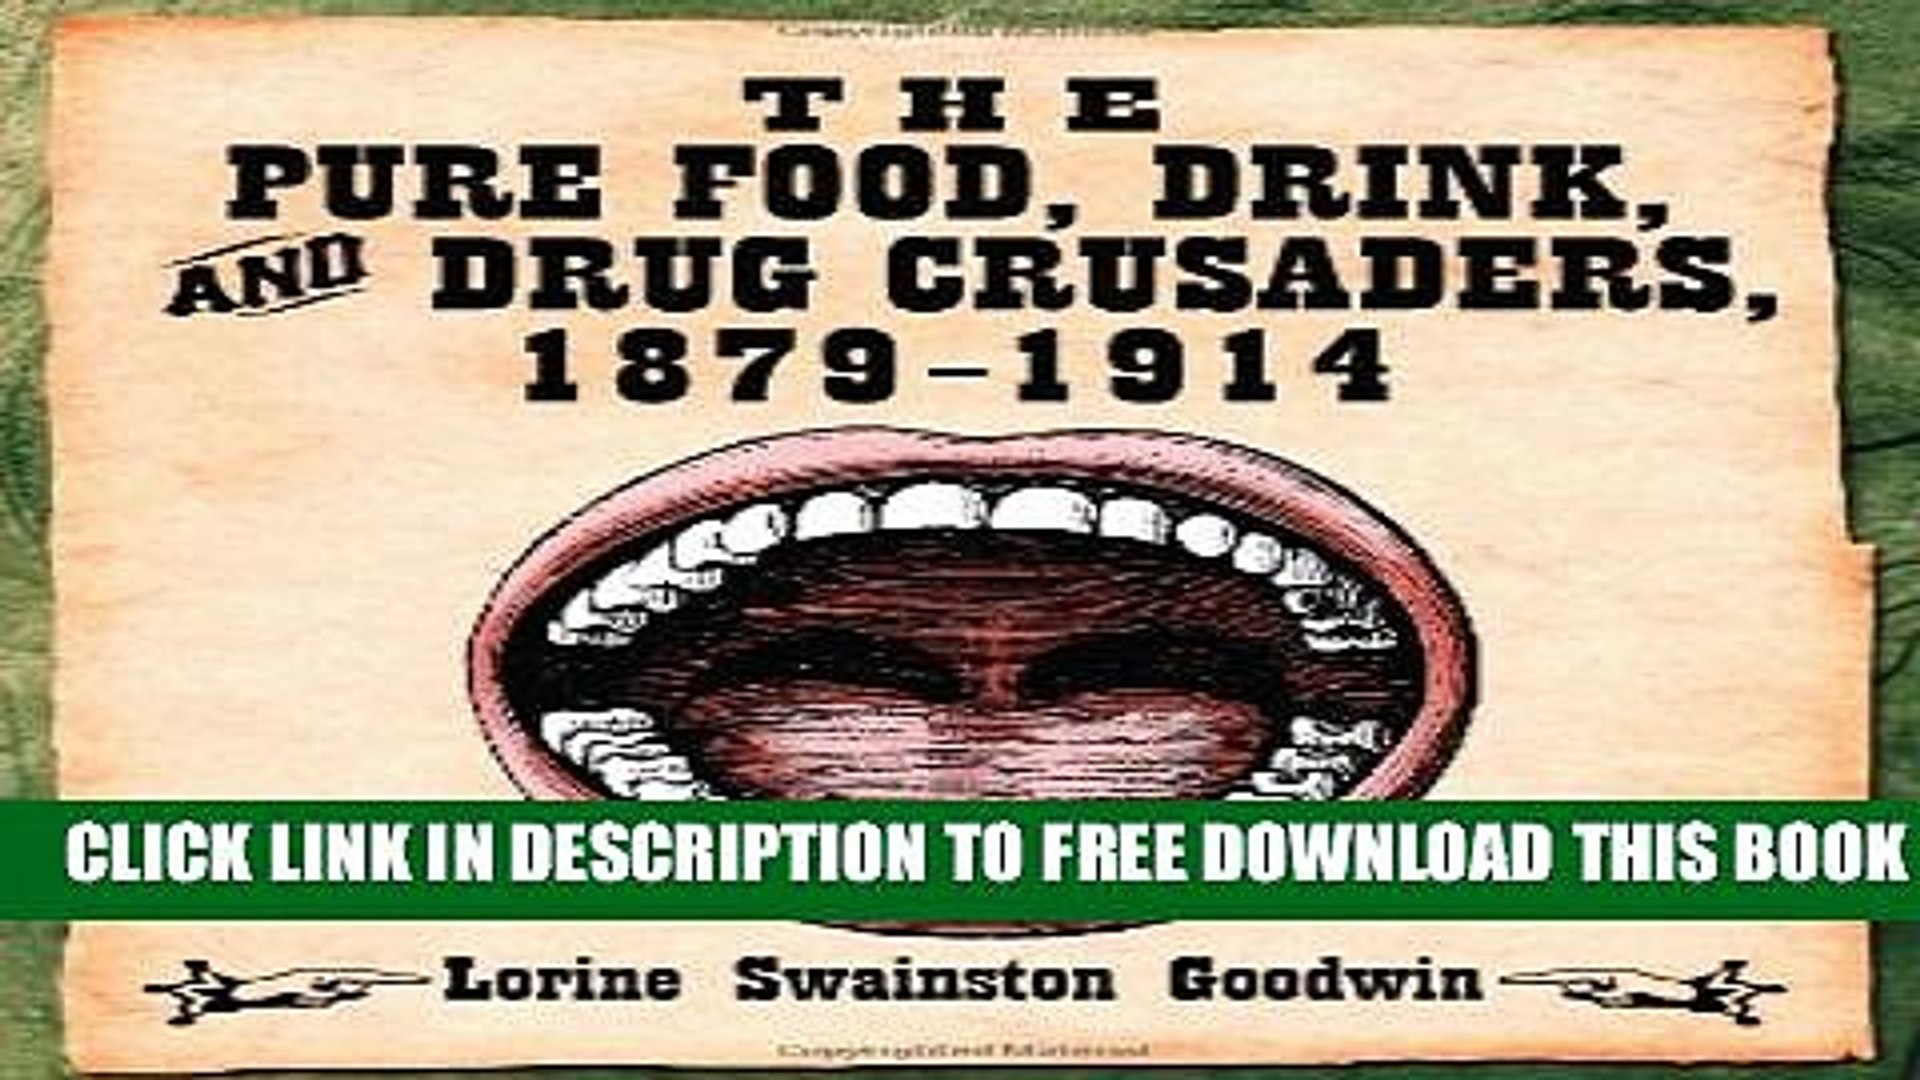 [PDF] The Pure Food, Drink, and Drug Crusaders, 1879-1914 Full Collection